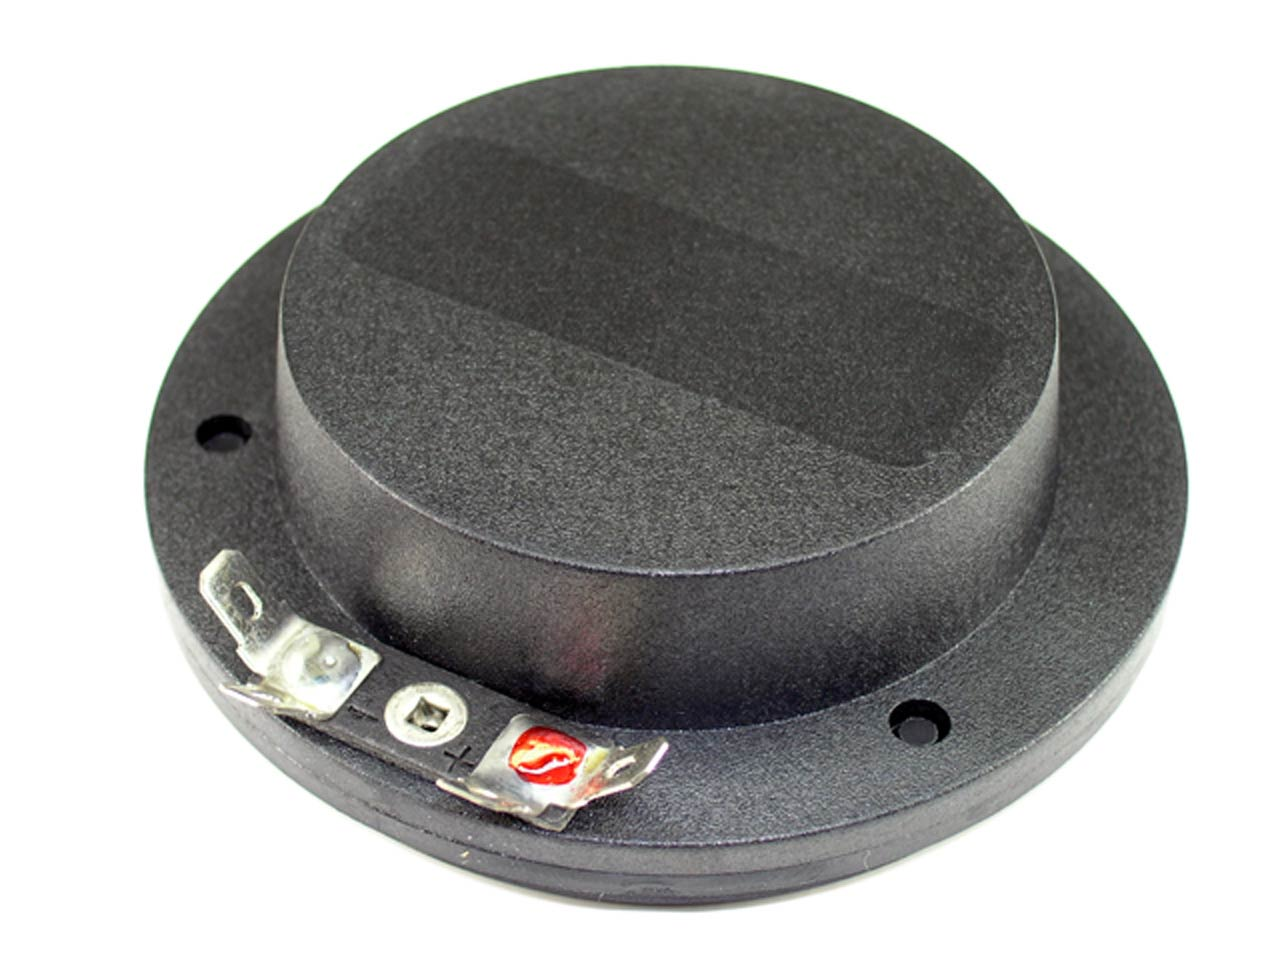 SS Audio Diaphragm for Yamaha JAY-2061, S-115, 16 Ohm, D-101AFT-16